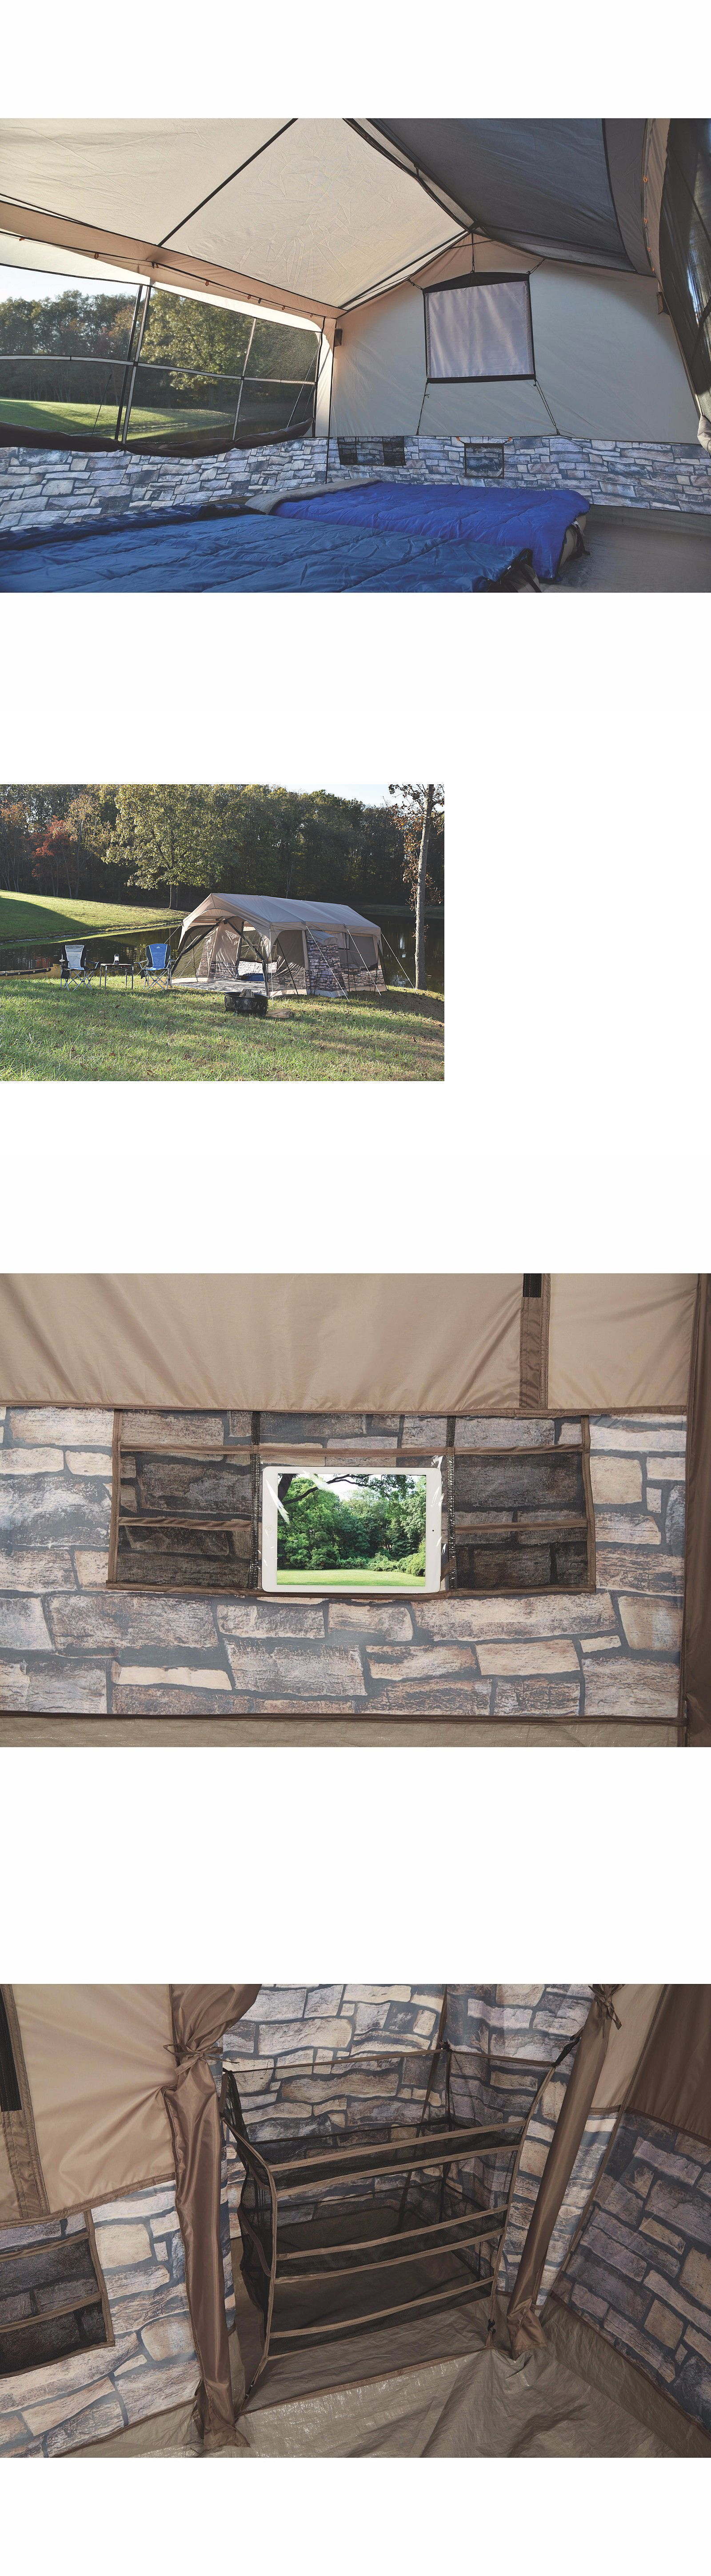 Tents 179010 Cabin Stone Cottage Tent 8 Person C&ing Family Lighting And Projector Screen - & Tents 179010: Cabin Stone Cottage Tent 8 Person Camping Family ...